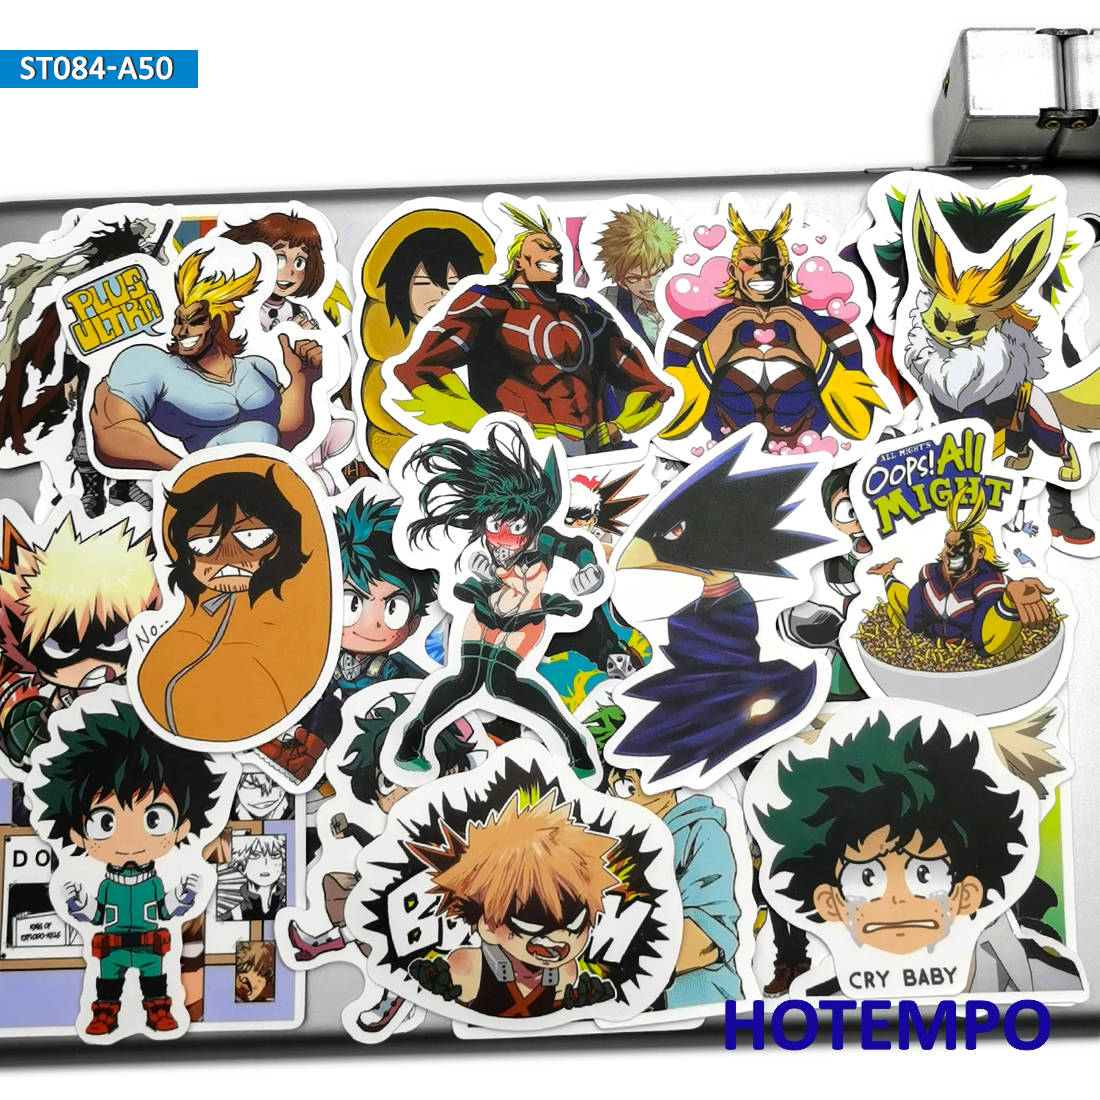 50pcs Anime Midoriya Izuku All Might My Hero Academia Stickers Toys For Mobile Phone Laptop Luggage Skateboard Cartoon Stickers